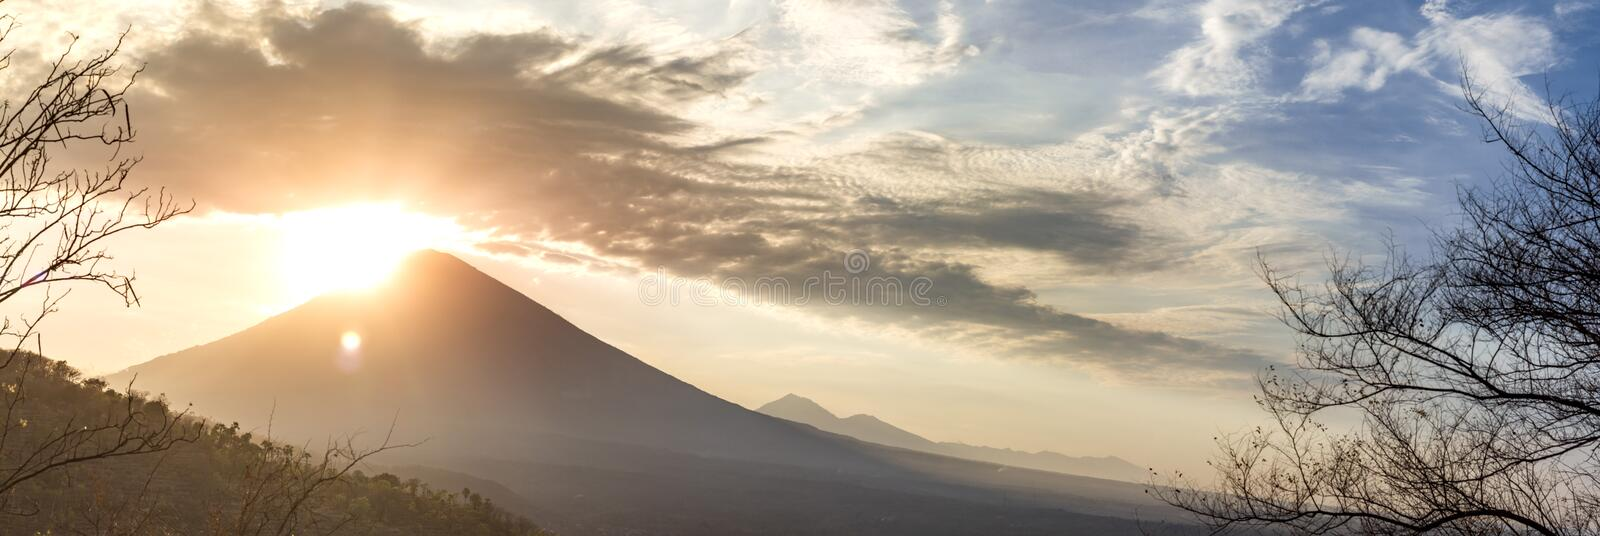 Panoramic beautiful view view of the mountains at sunset. evening cloudy view of the volcano ?gung, Bali stock photography